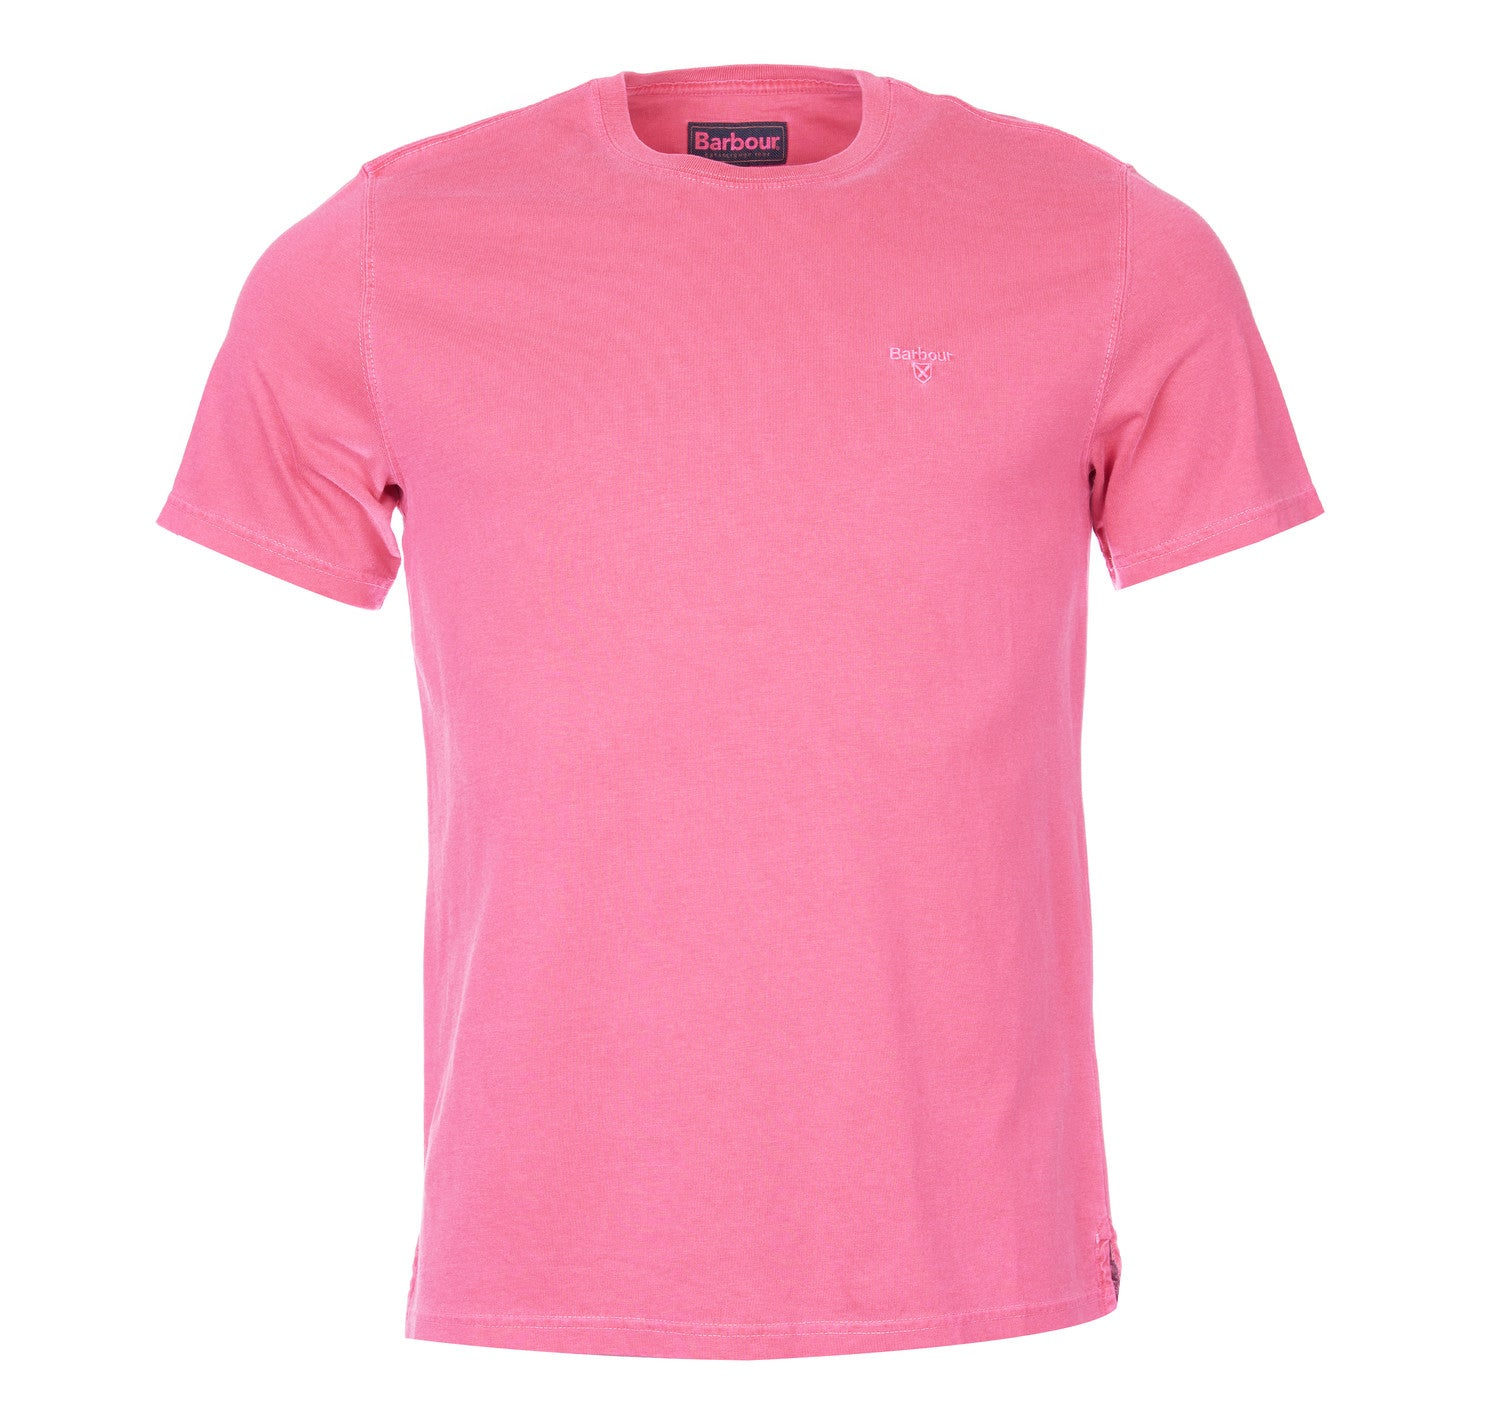 Barbour Garment Dyed Tee for Men in Fuchsia